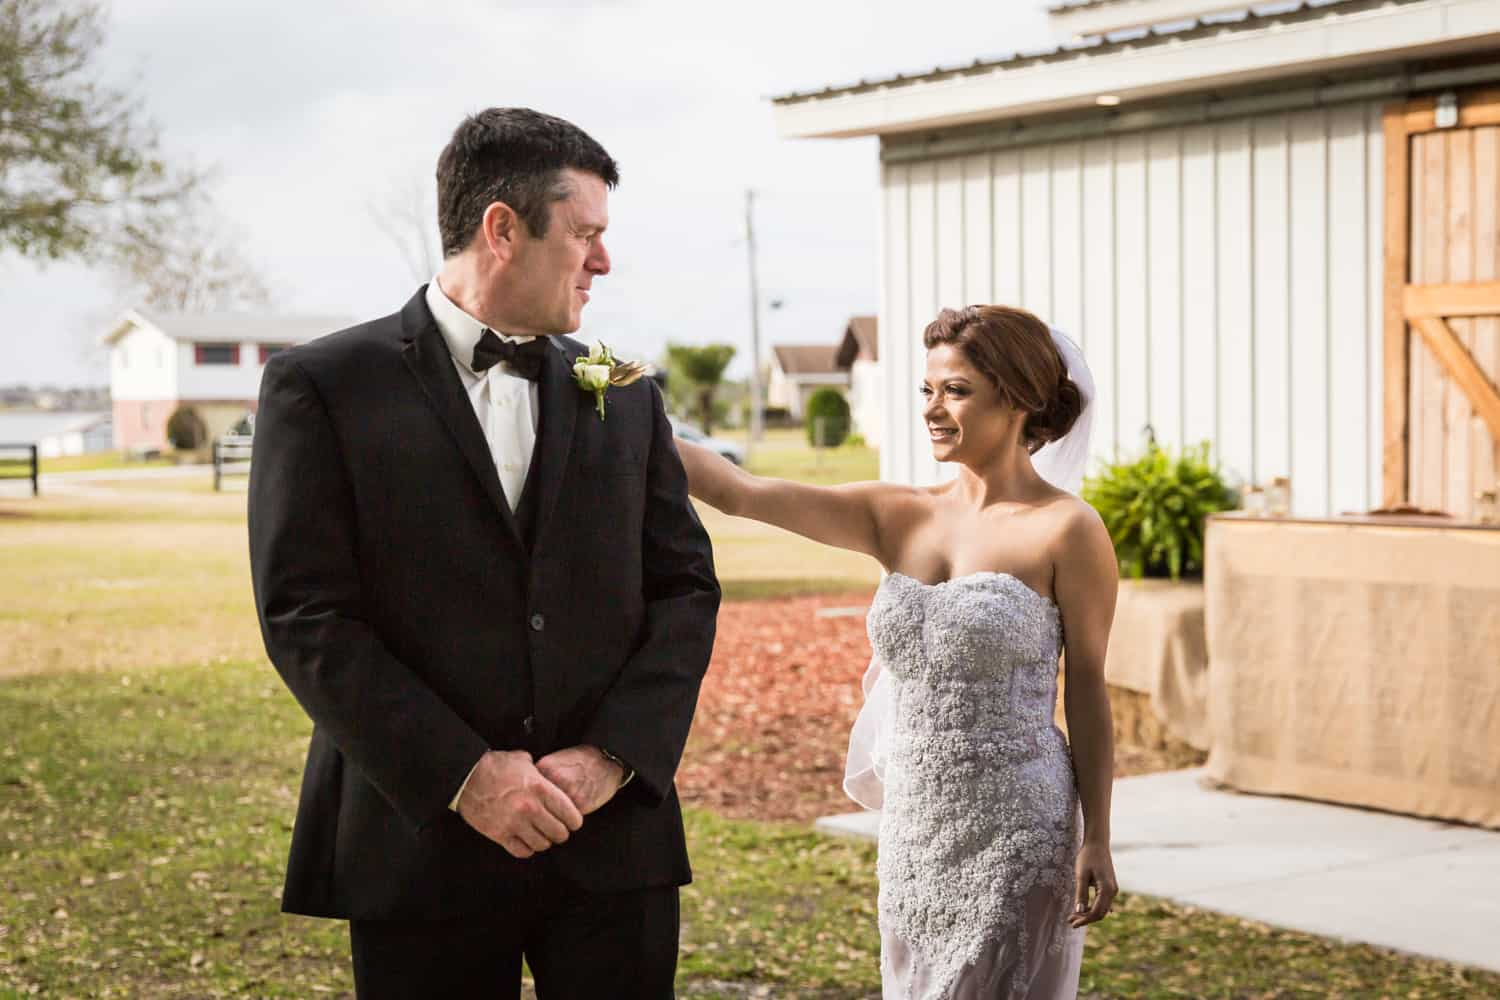 Groom seeing bride for first time at first look for an article on wedding cost cutting tips